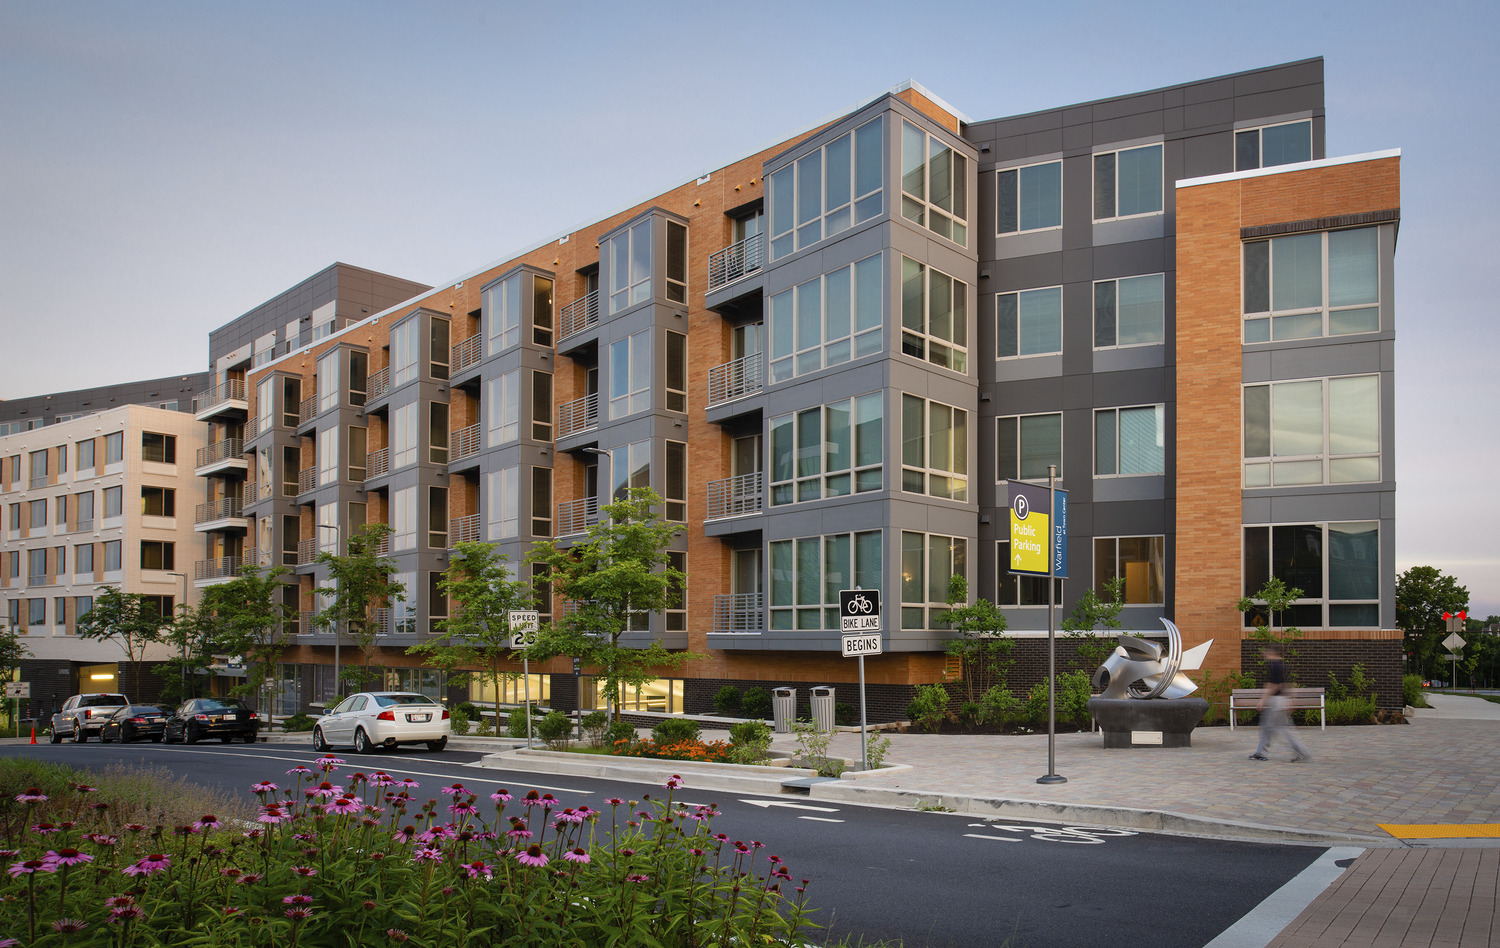 CBG builds m.flats and TEN.M, a 473-Unit Mixed-Use Luxury Apartment Community with Parking Garage in Columbia, MD